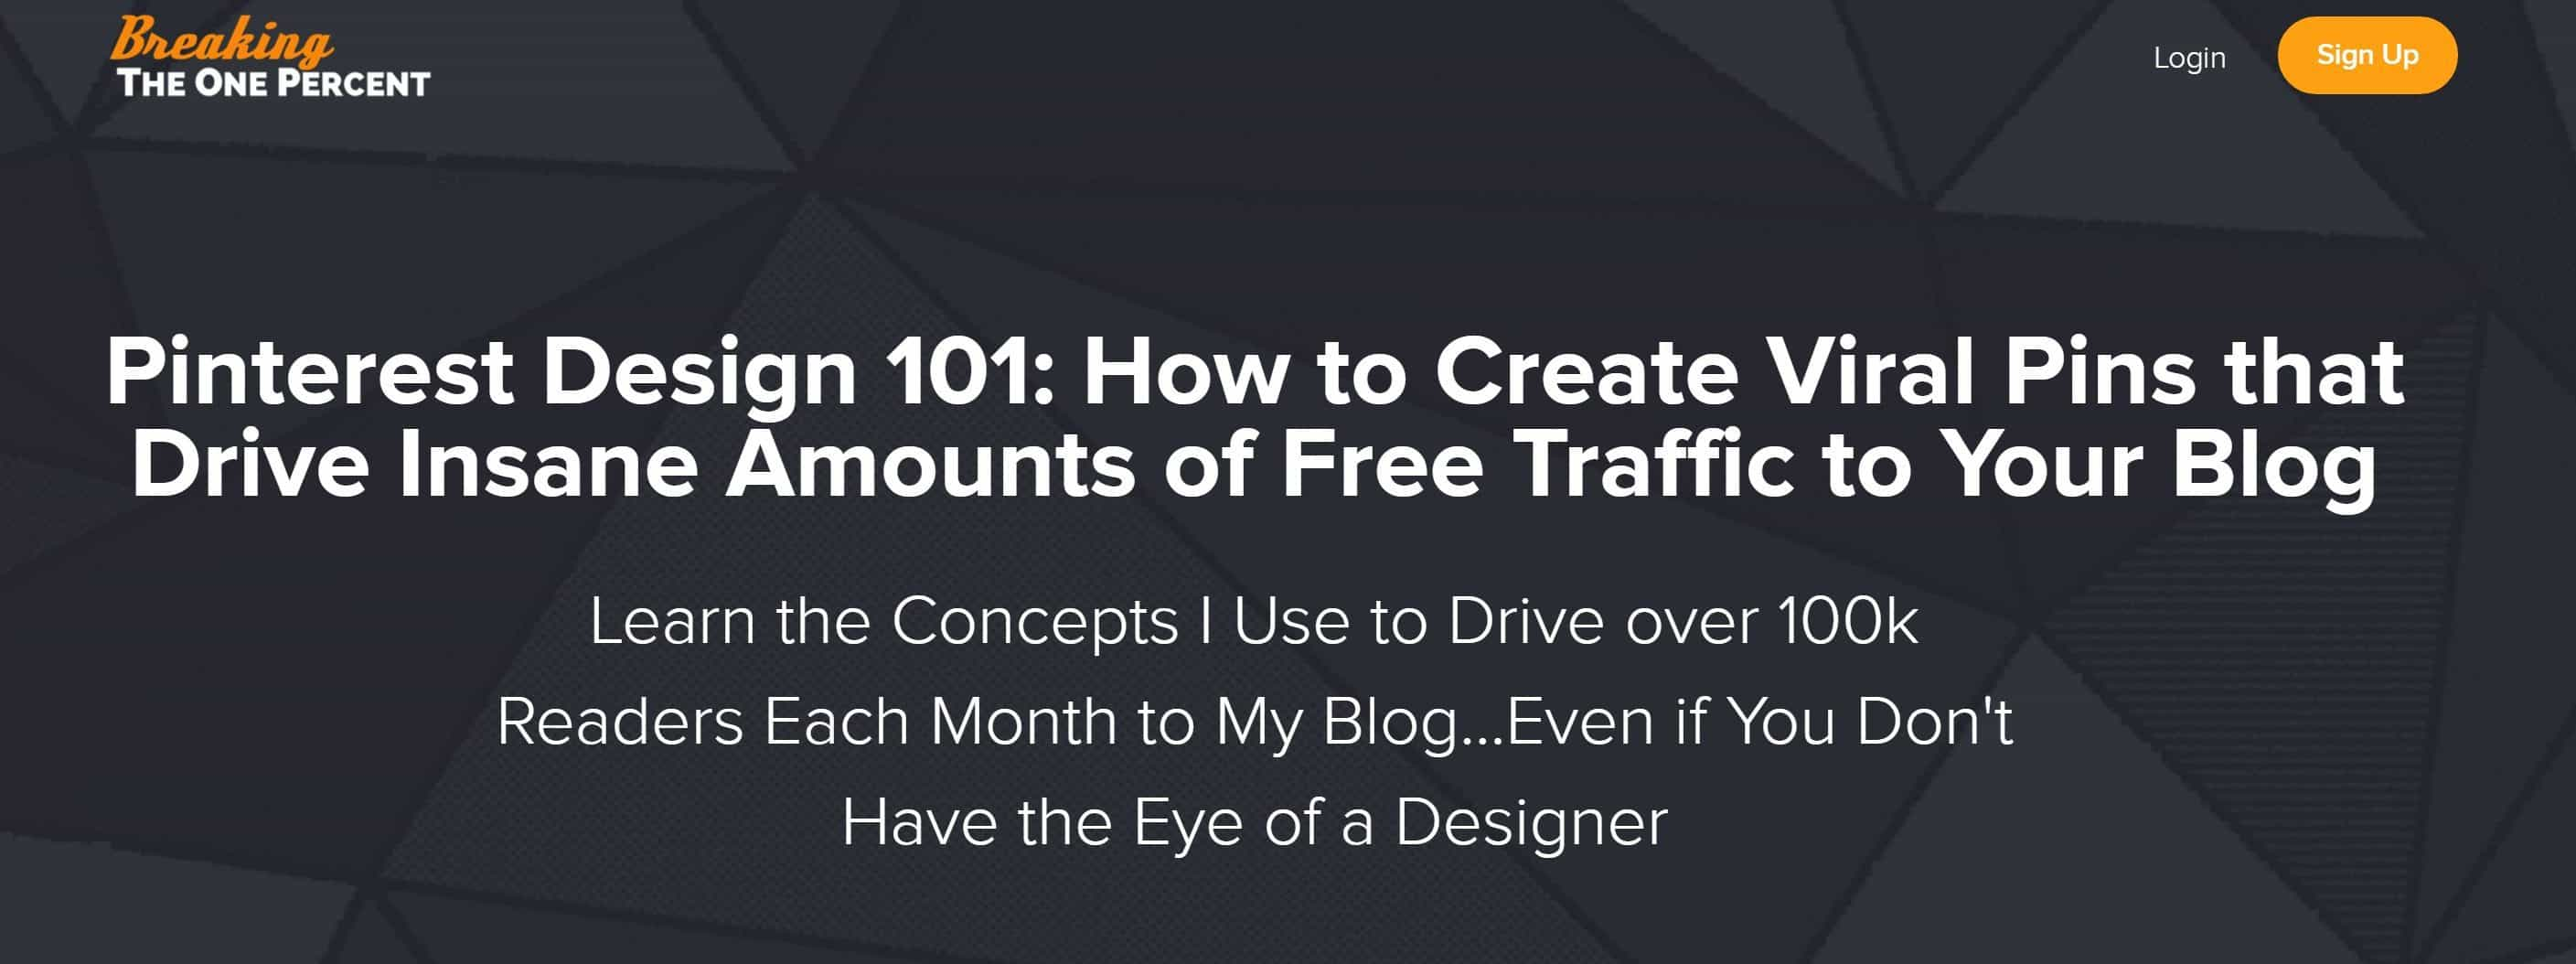 Pinterest Design Course: How to Create Viral Pins and Increase Your Blog Traffic